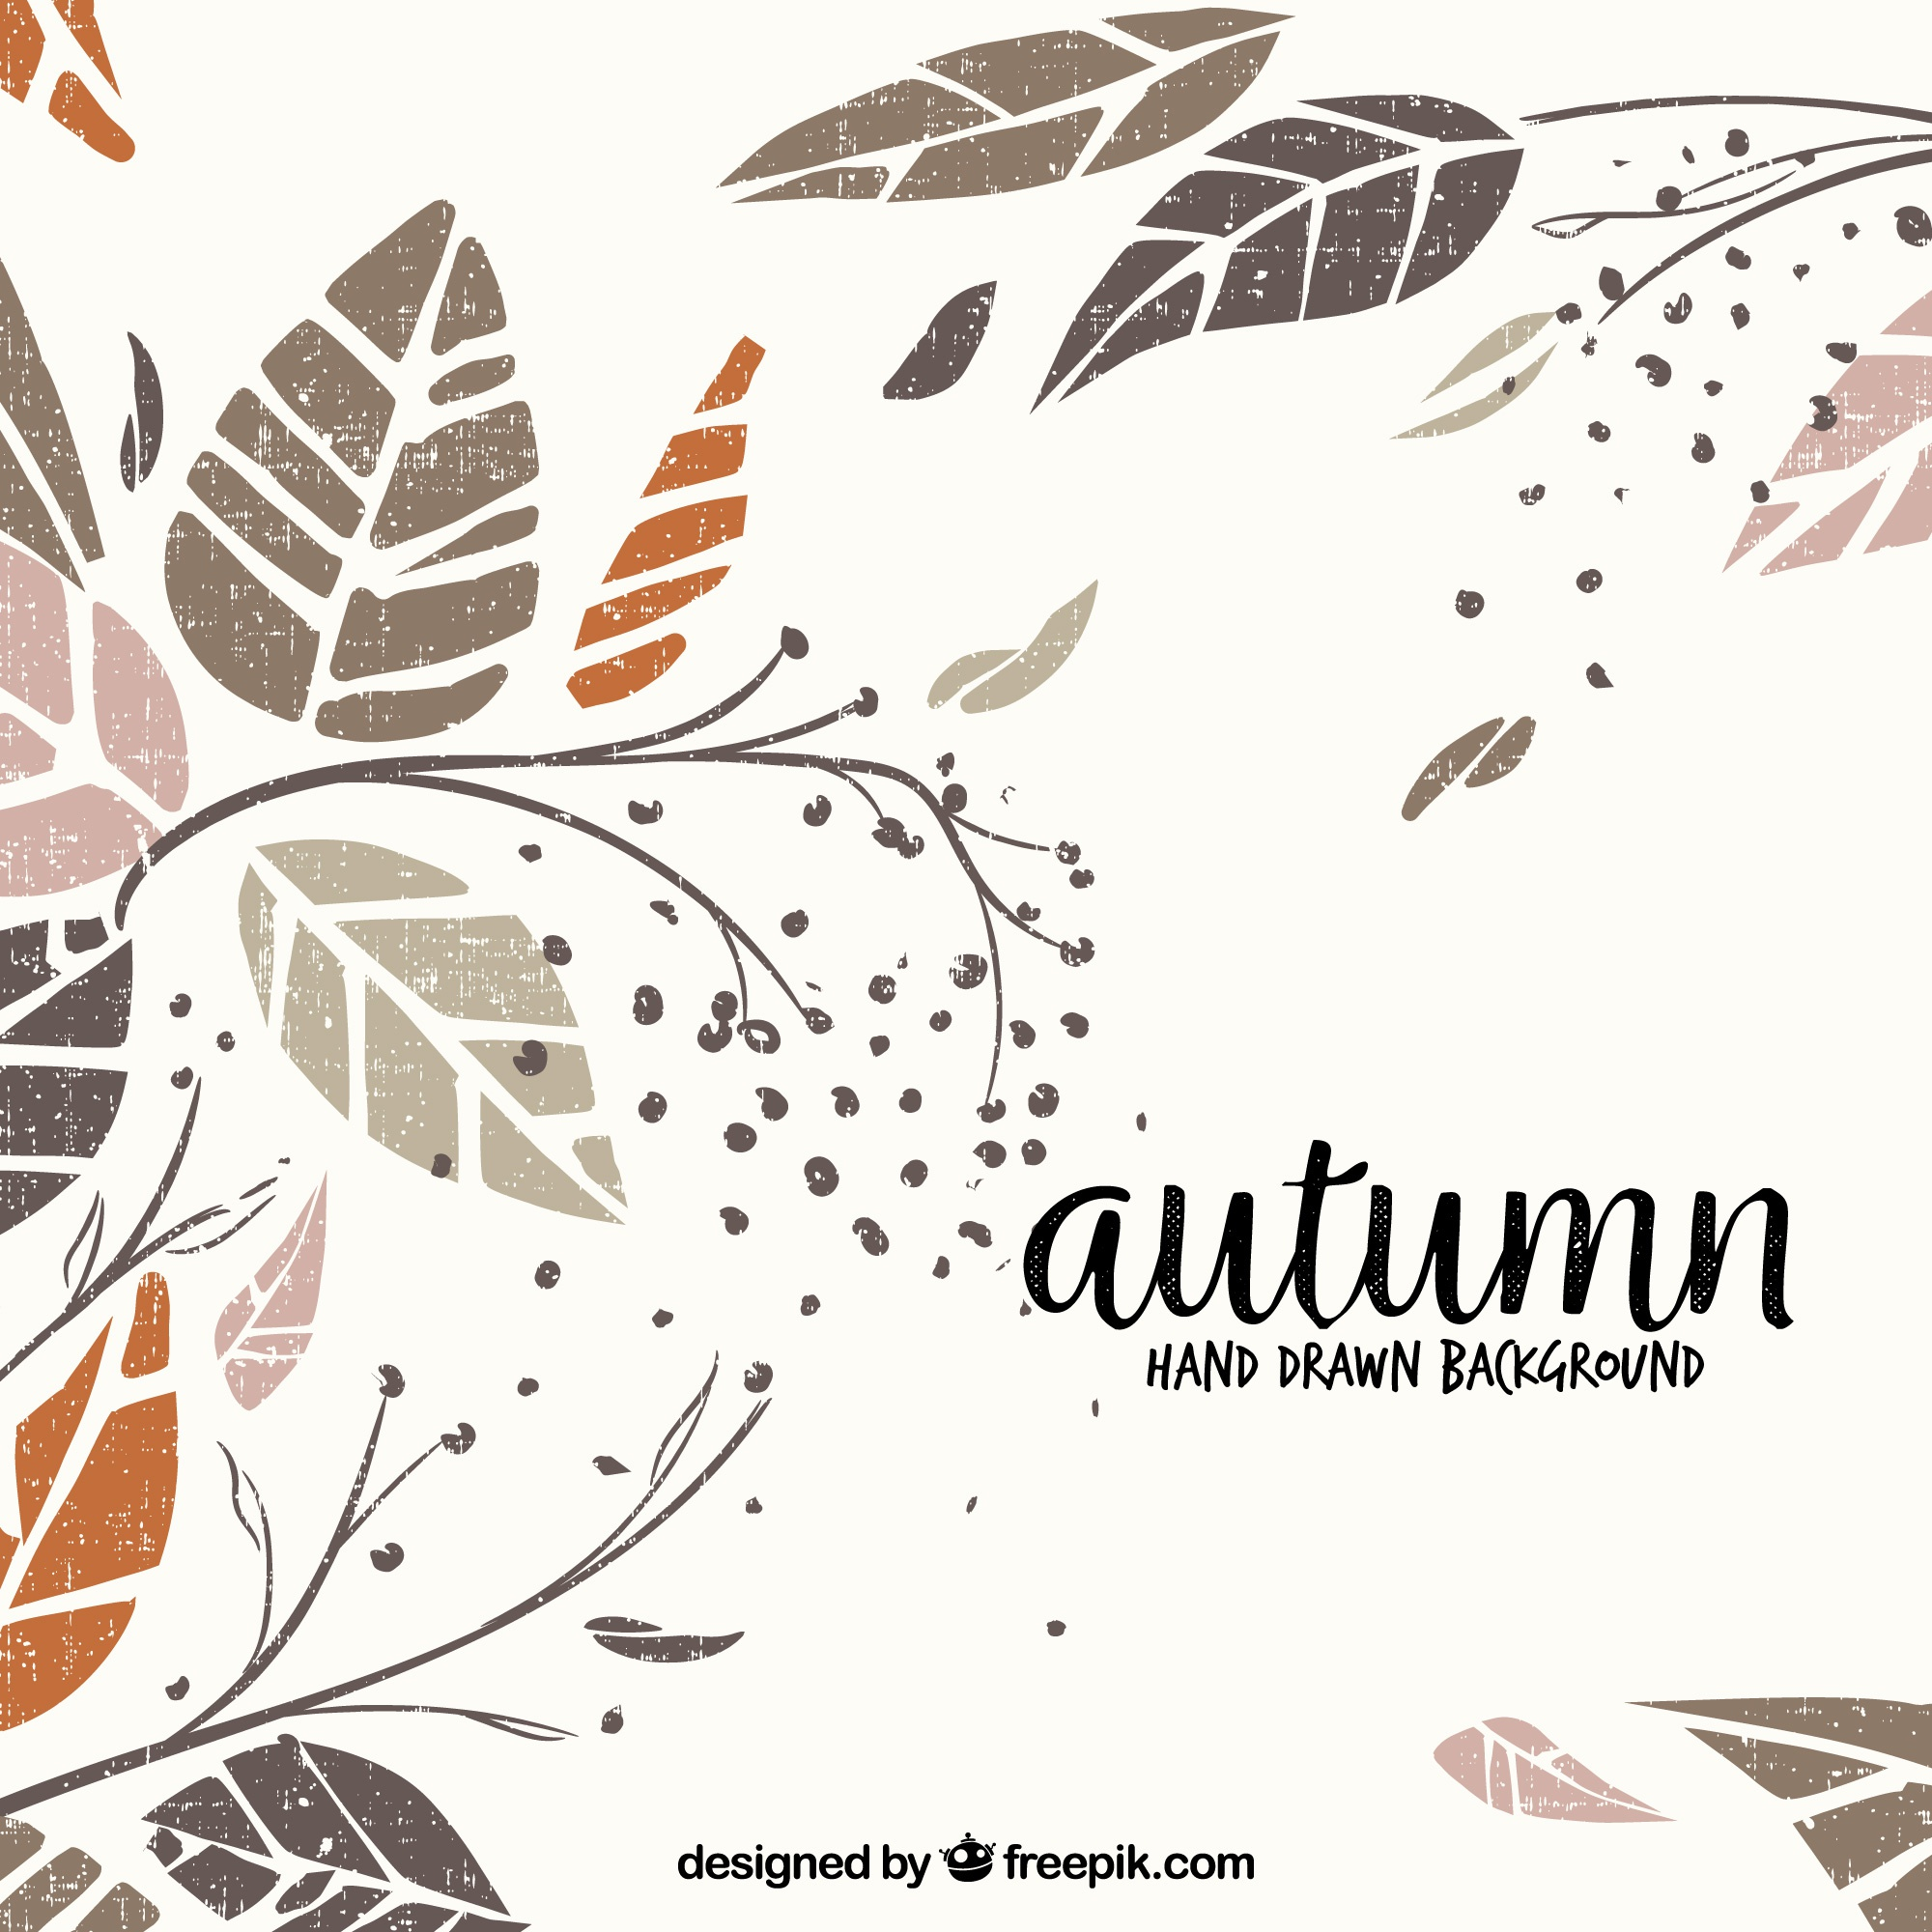 Hand drawn autumn background with elegant style